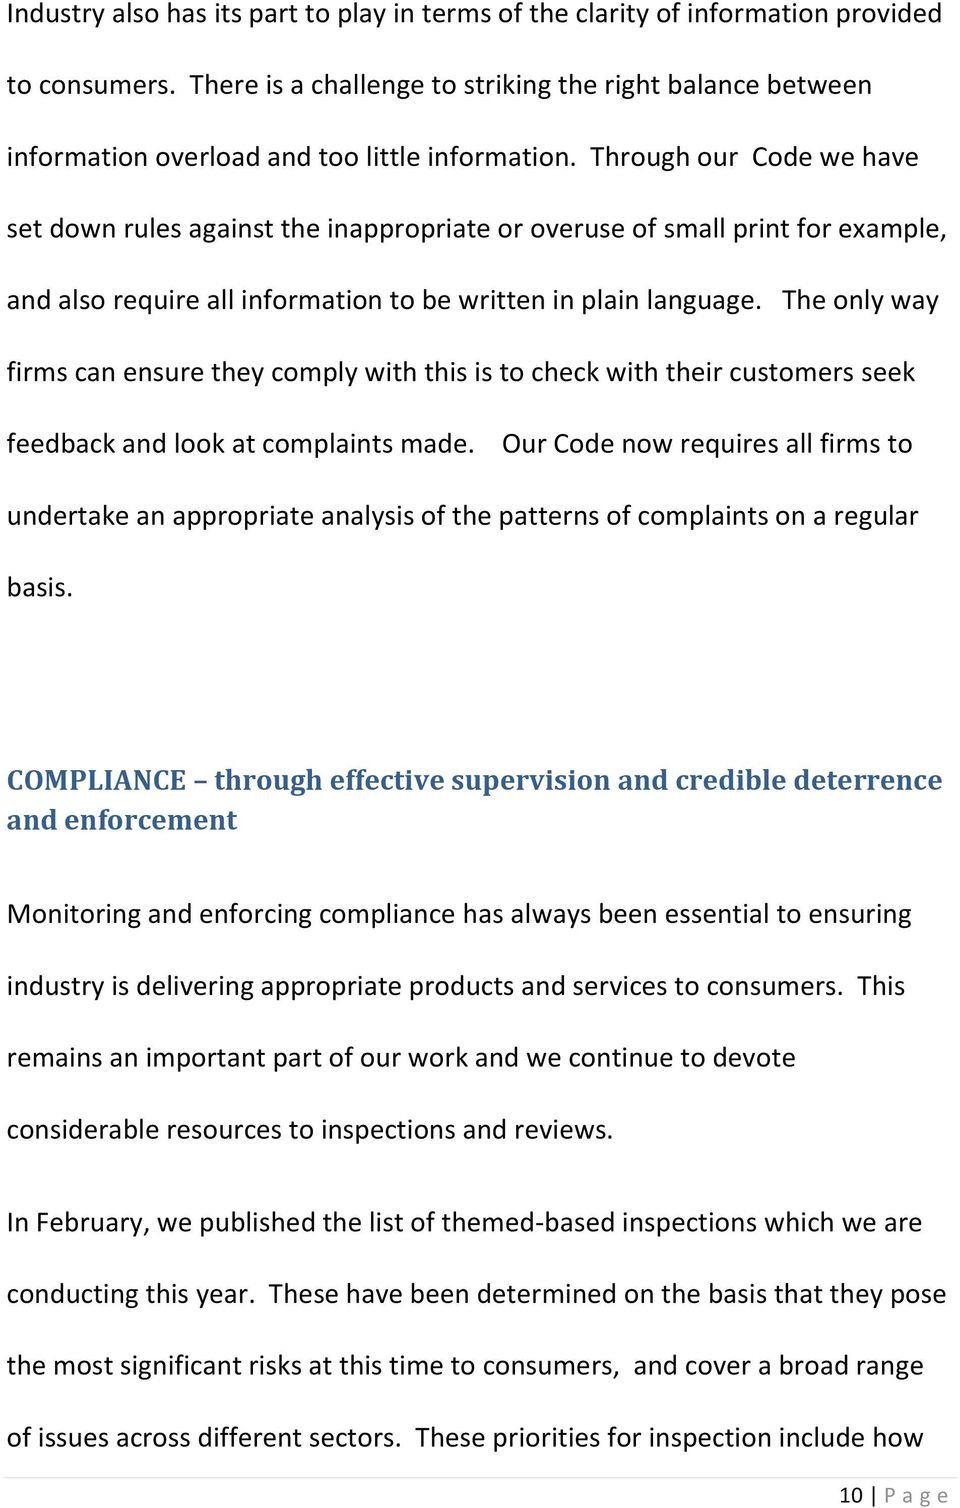 Through our Code we have set down rules against the inappropriate or overuse of small print for example, and also require all information to be written in plain language.